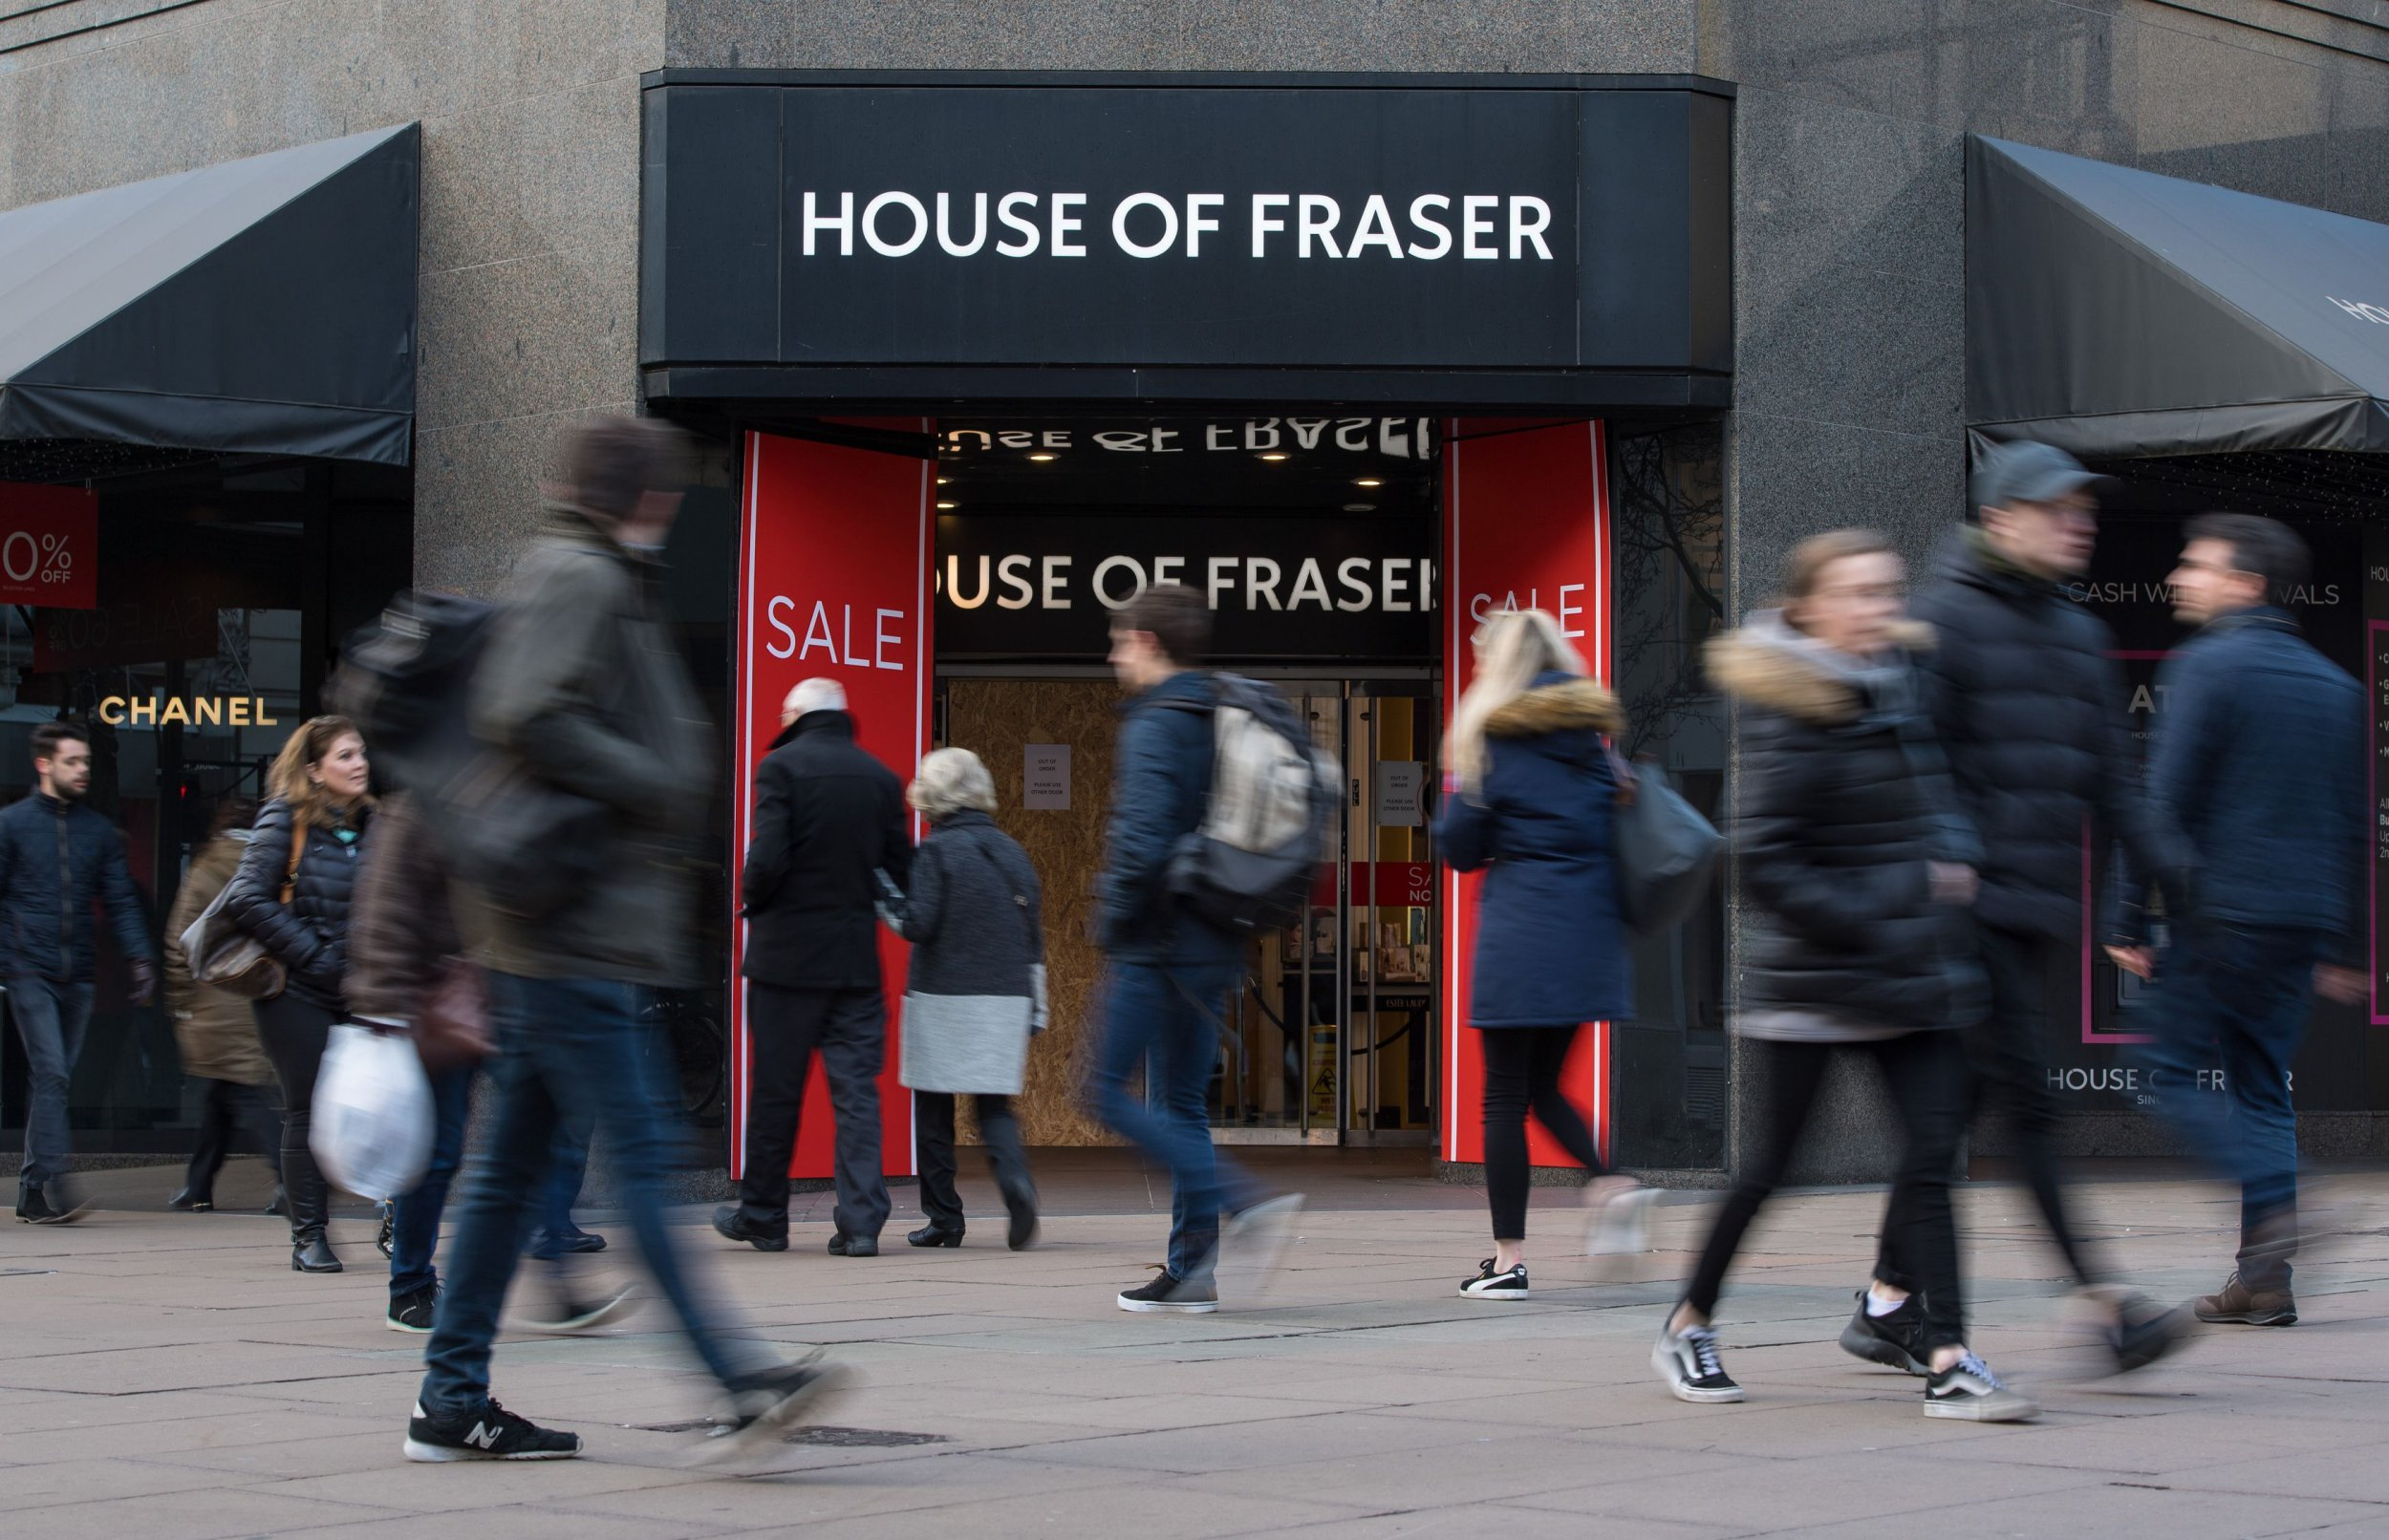 File photo dated 07/01/18 of the Oxford Street, London, branch of the department store chain House of Fraser, which has said that it is set to fall into administration later today. PRESS ASSOCIATION Photo. Issue date: Friday August 10, 2018. See PA story CITY HouseofFraser. Photo credit should read: Dominic Lipinski/PA Wire